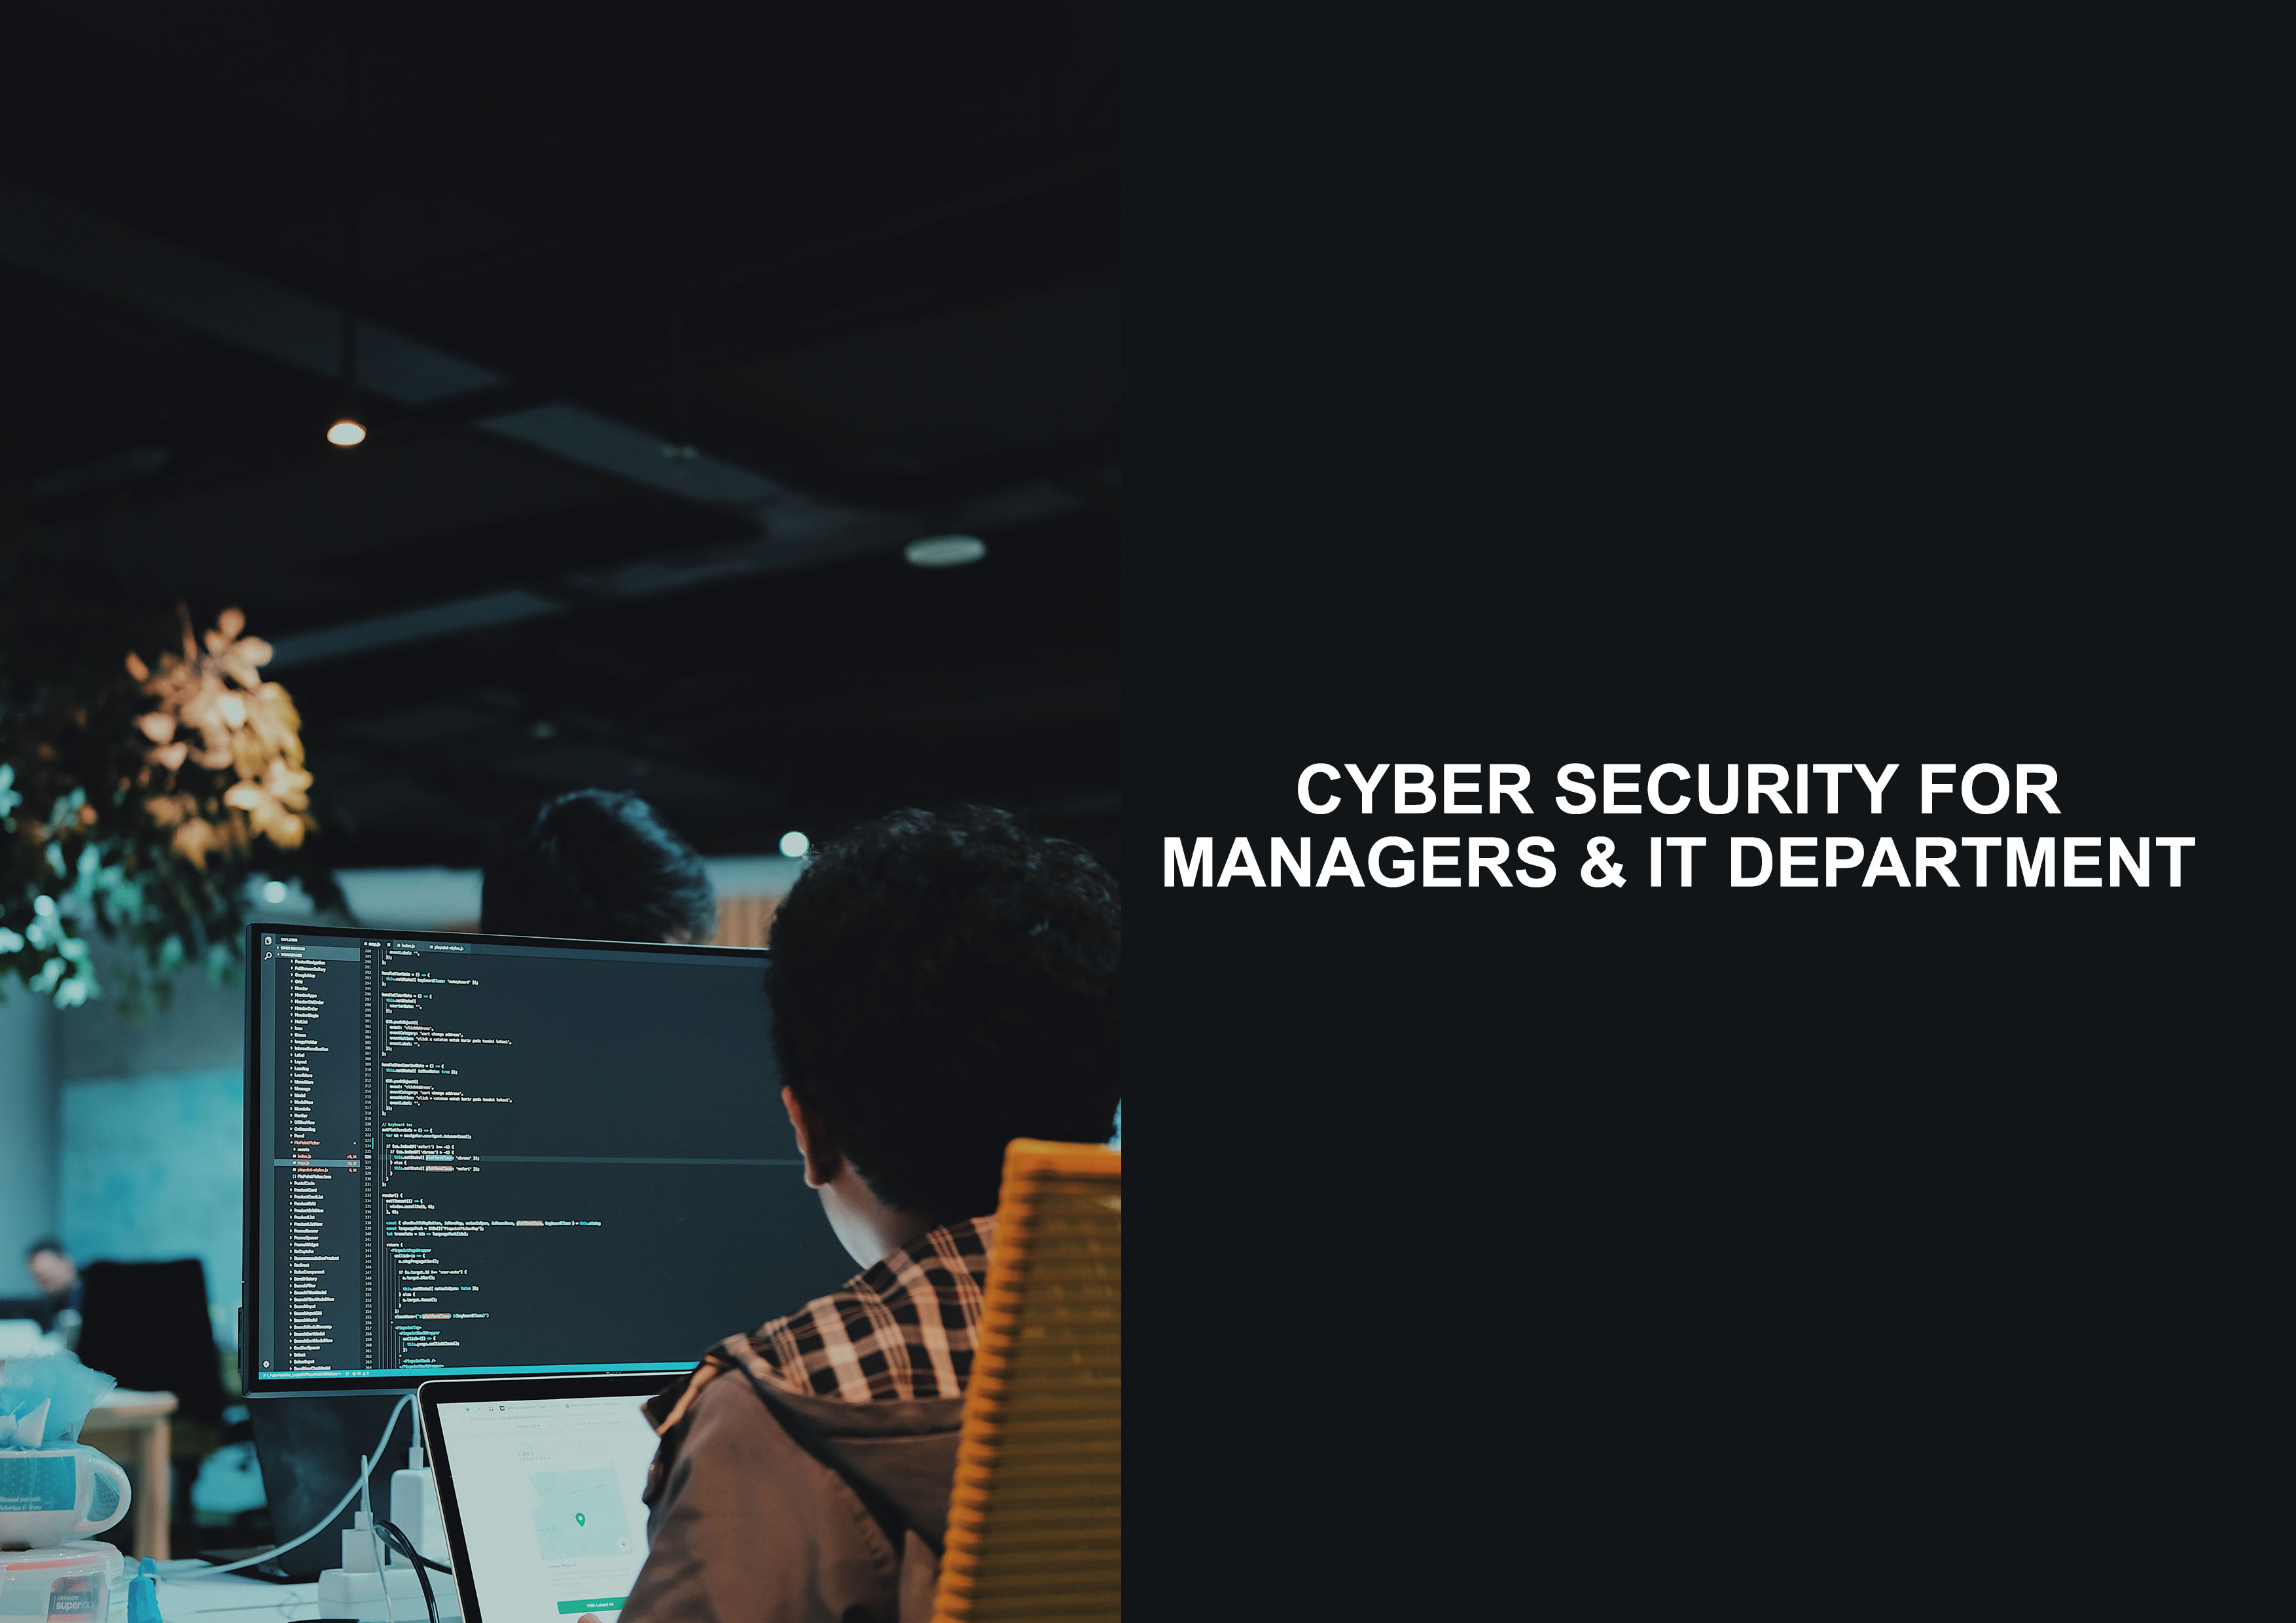 Cyber Security for Managers & IT Department